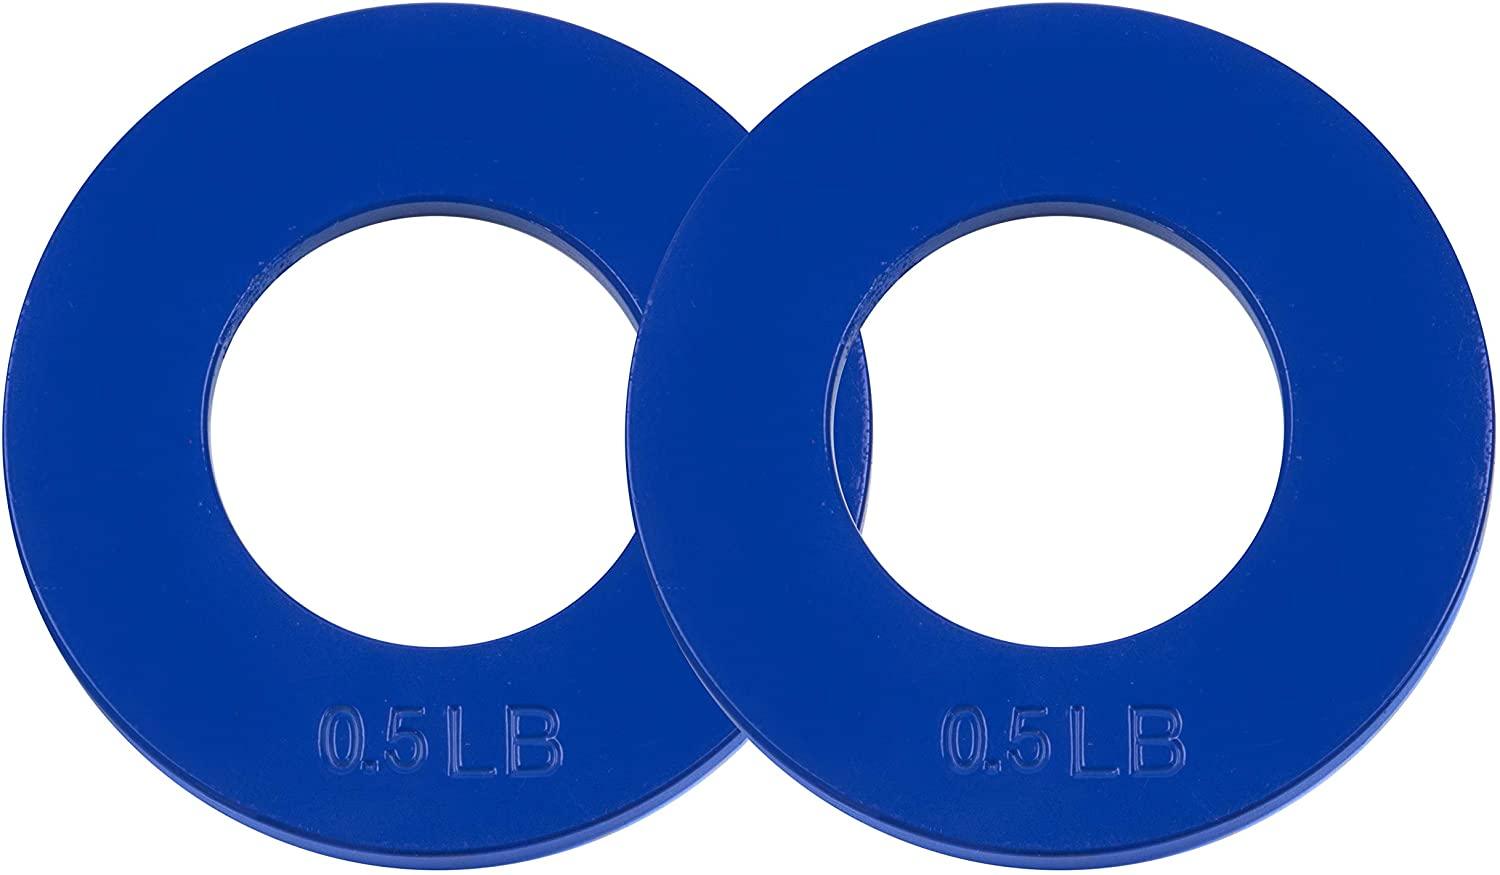 Fractional Weight Plates Designed for Olympic Barbells for Strength Training and Micro Plates Weight Plates Choose Set 0.50 Logest Fractional Olympic Plates Set of 2 Plates 1 LB 1.25 LB 1.5 LB